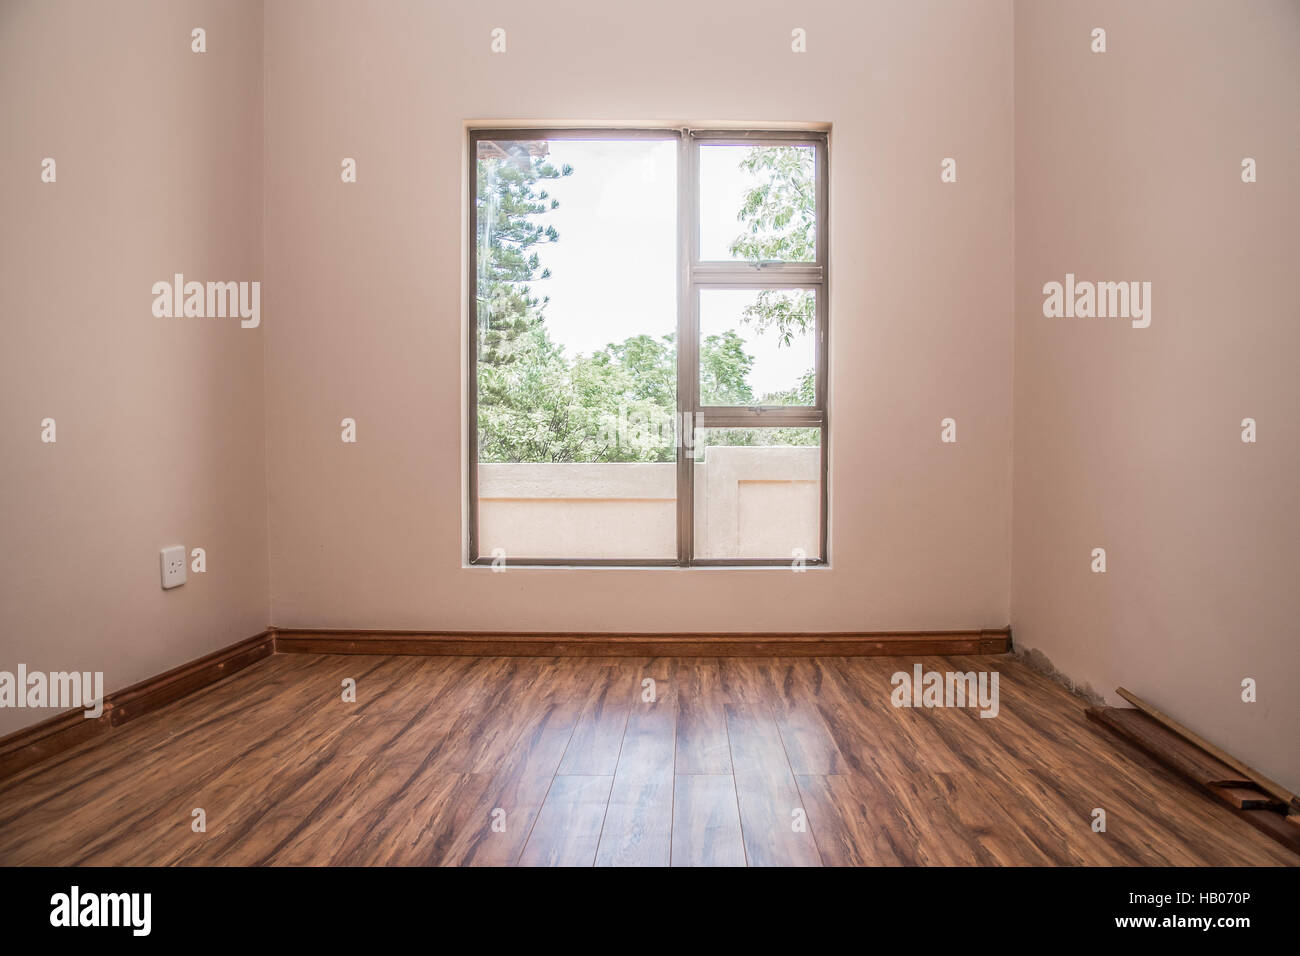 Incomplete Room - Stock Image